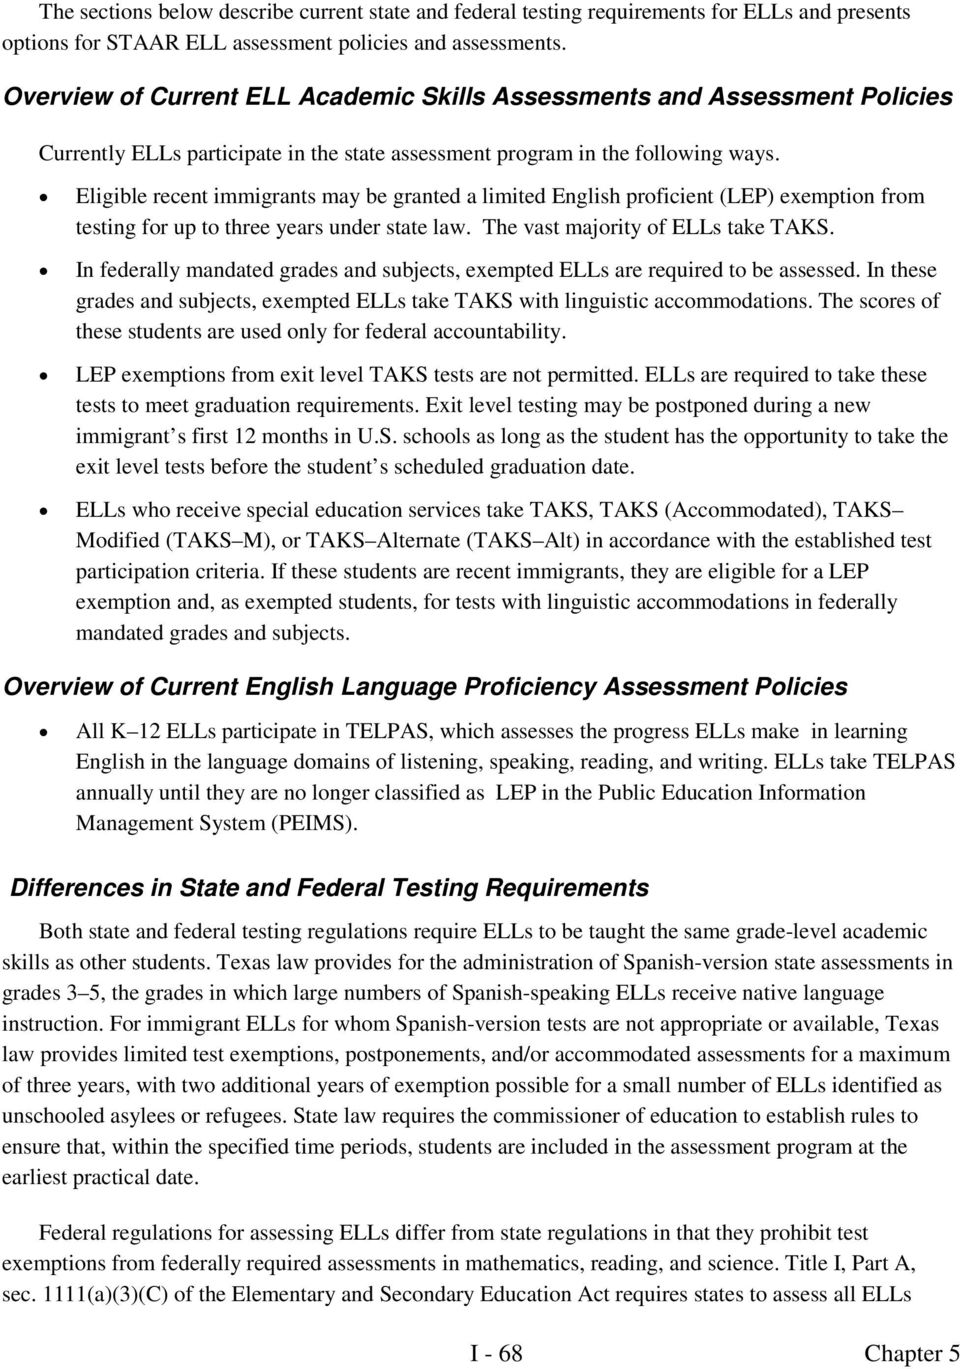 Eligible recent immigrants may be granted a limited English proficient (LEP) exemption from testing for up to three years under state law. The vast majority of ELLs take TAKS.